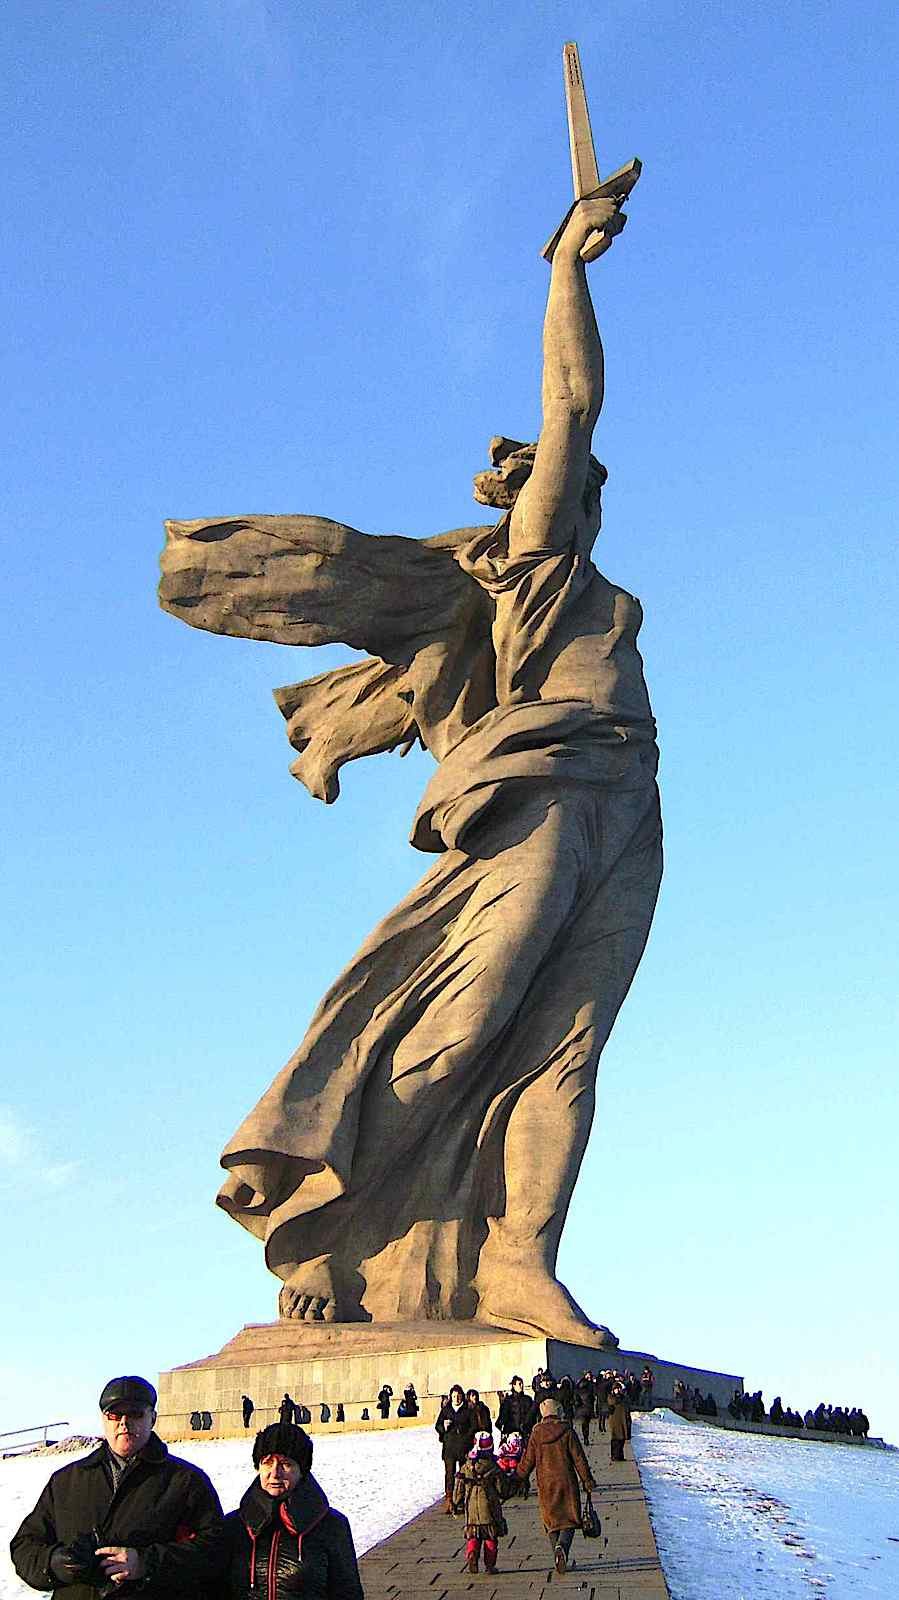 a WW2 memorial monument in Russia, The Motherland Calls